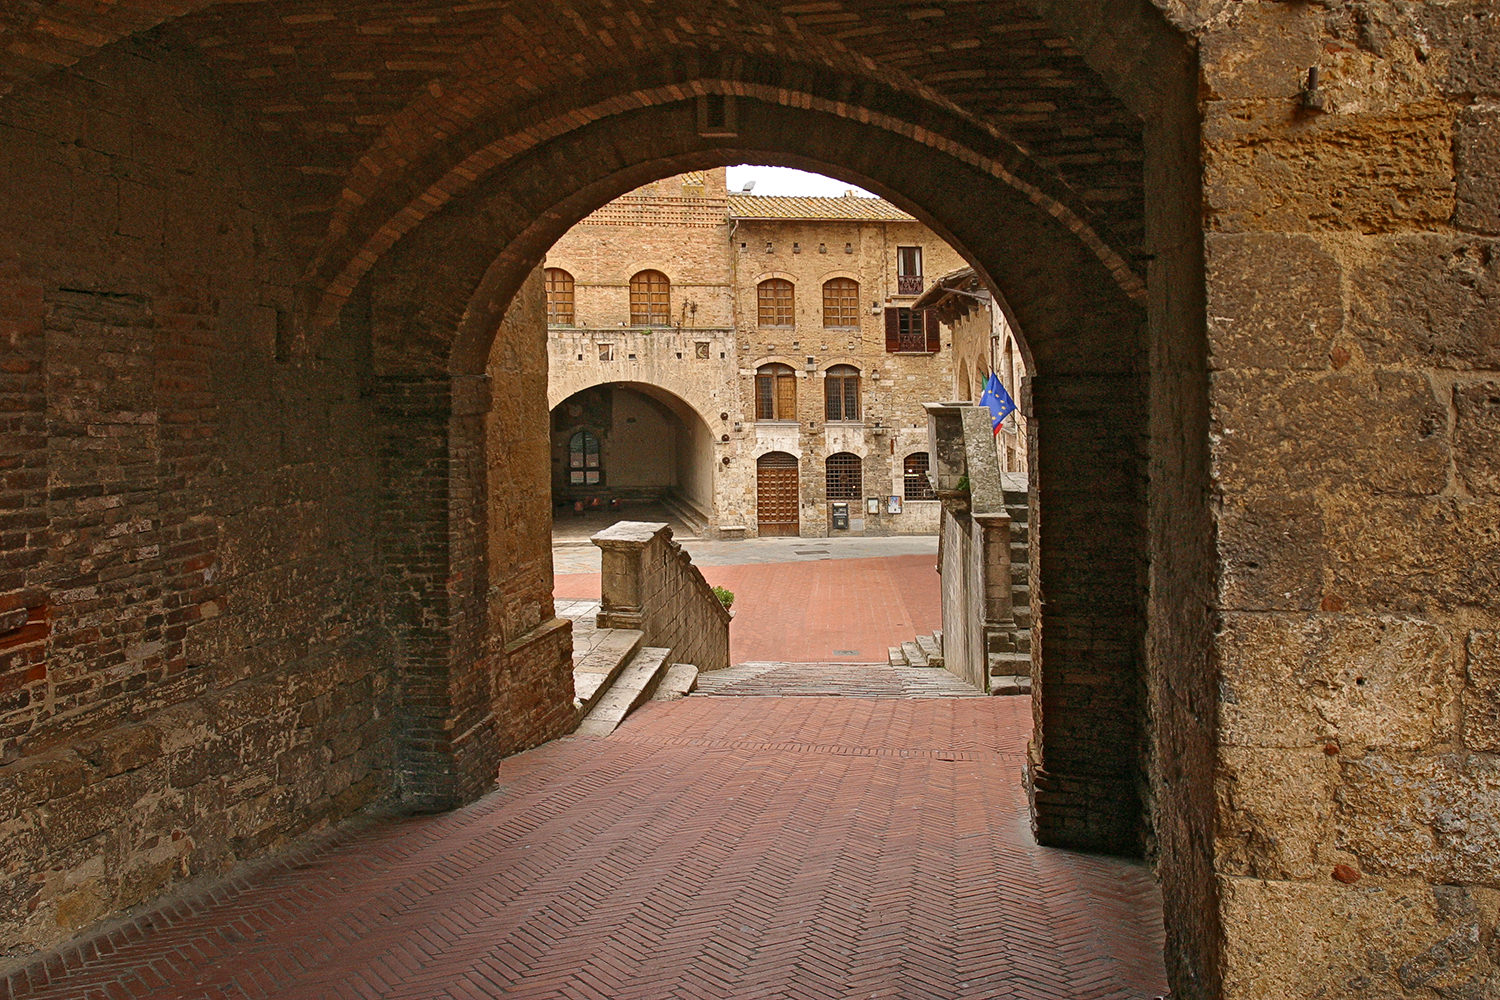 Stairs to Plaza, San Gimignano